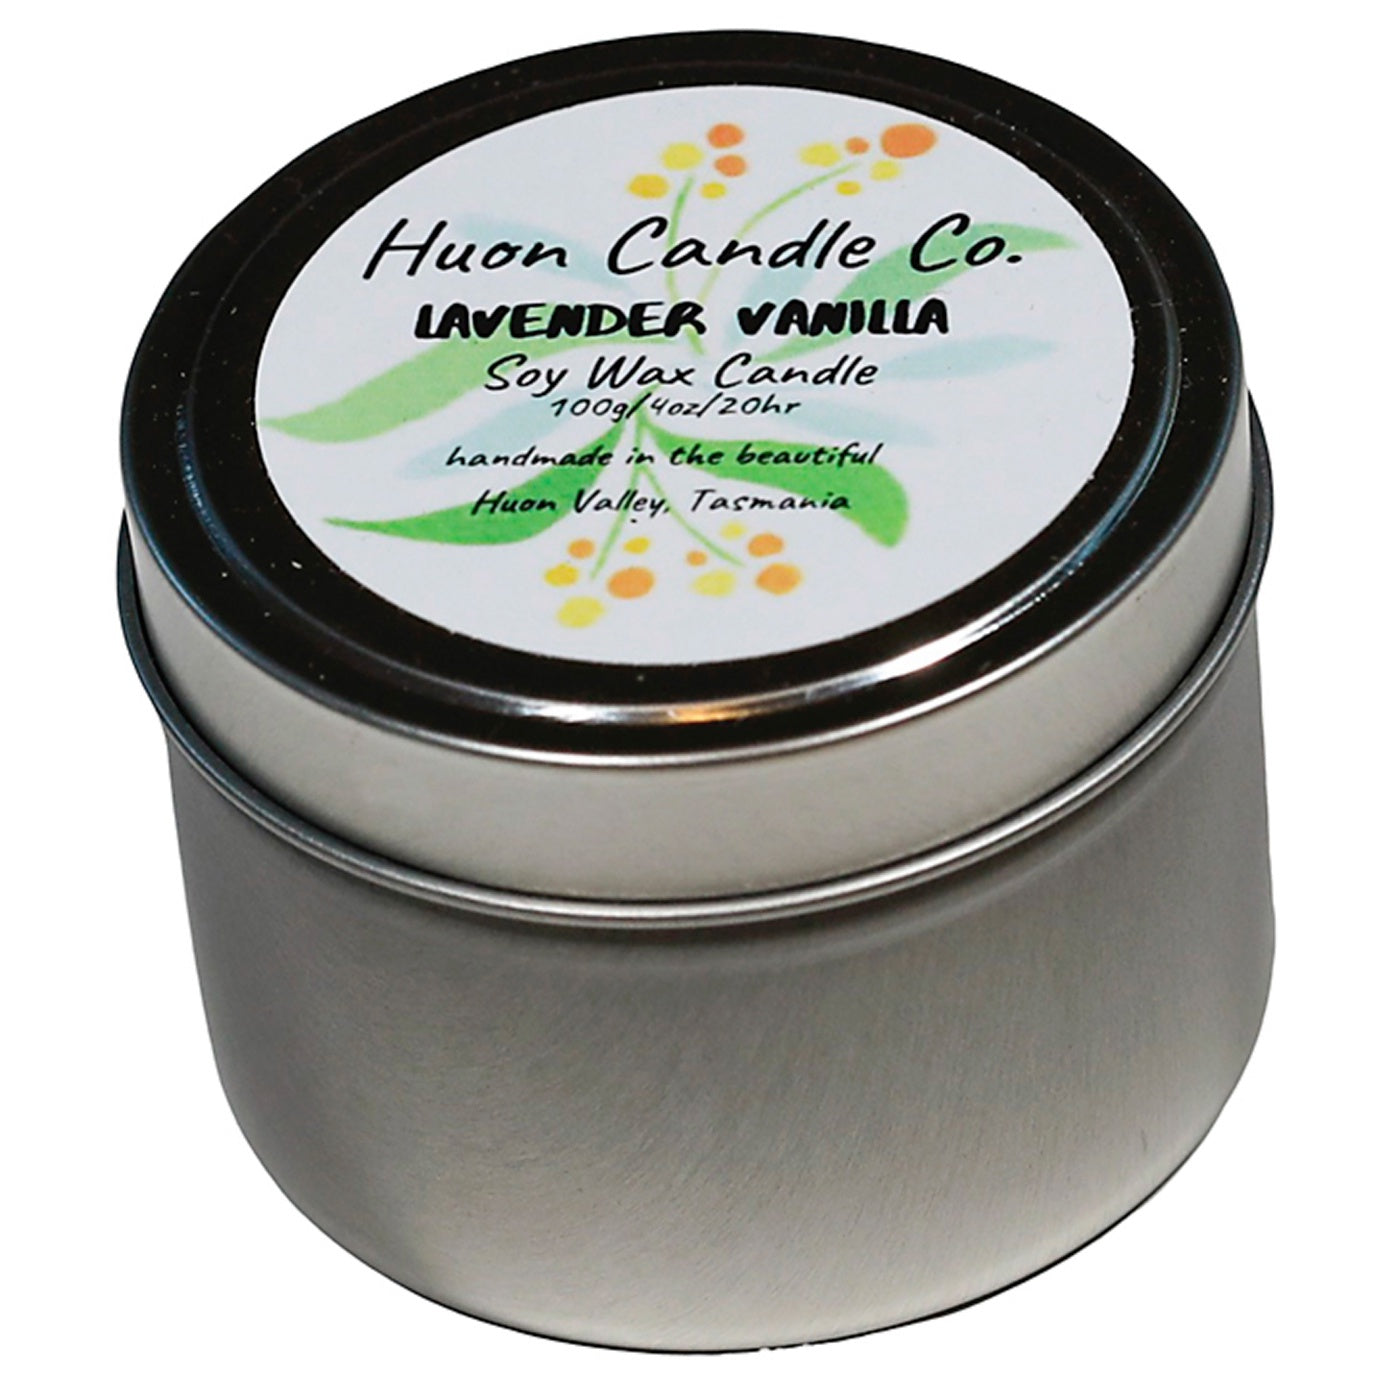 Huon Candle Co - Travel Tin Candle - Lavender Vanilla